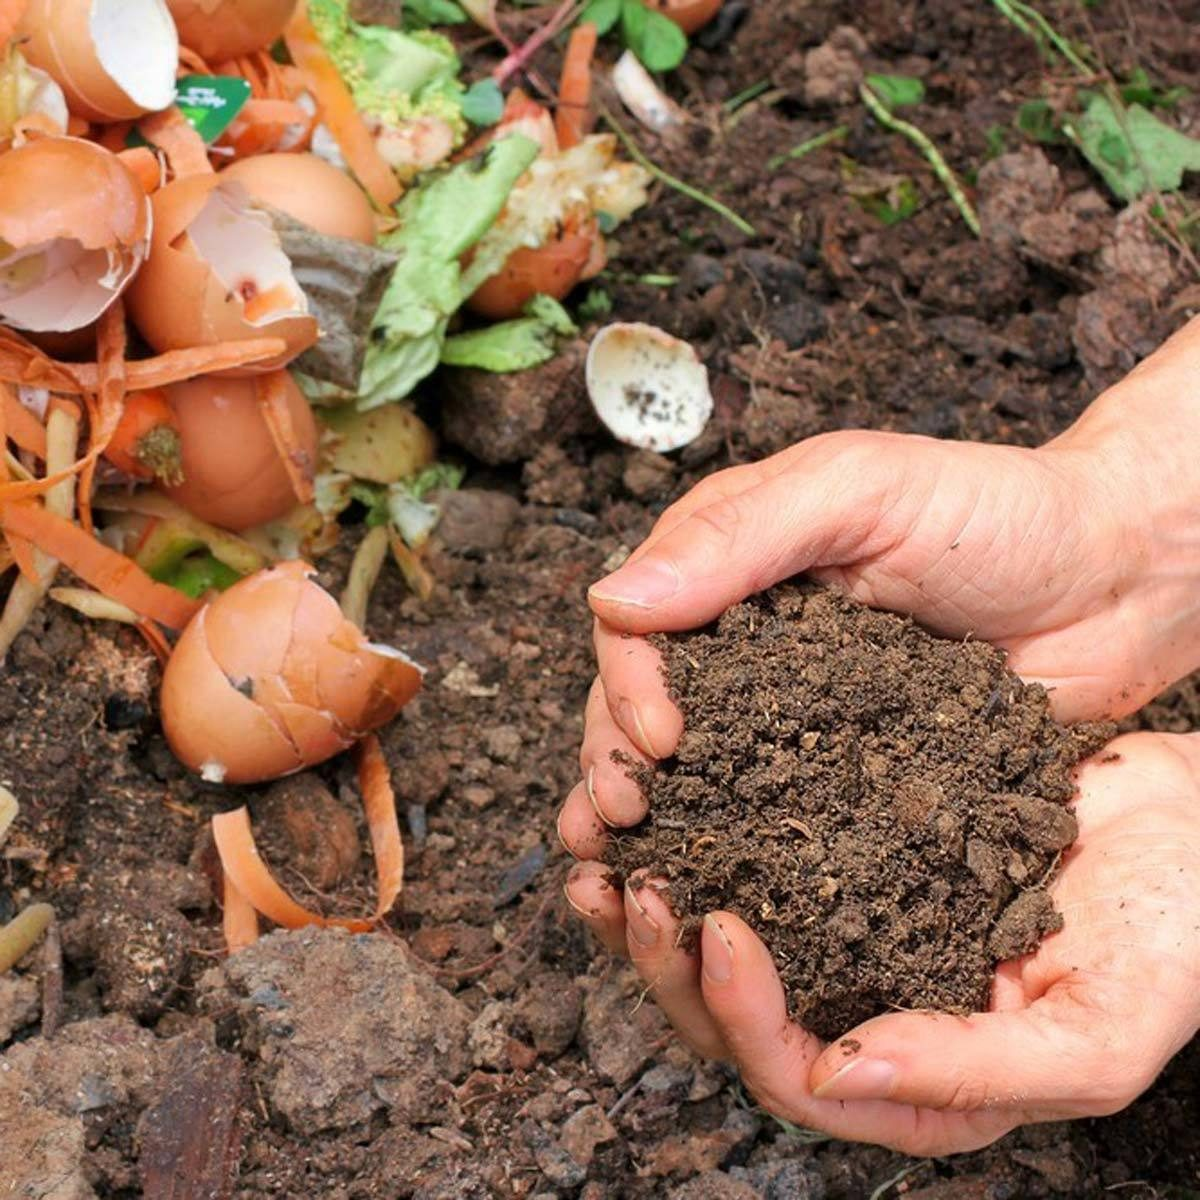 dfh17sep038_160161059_01-1200x1200 compost pile dirt garden egg shells lettuce soil fertilizer